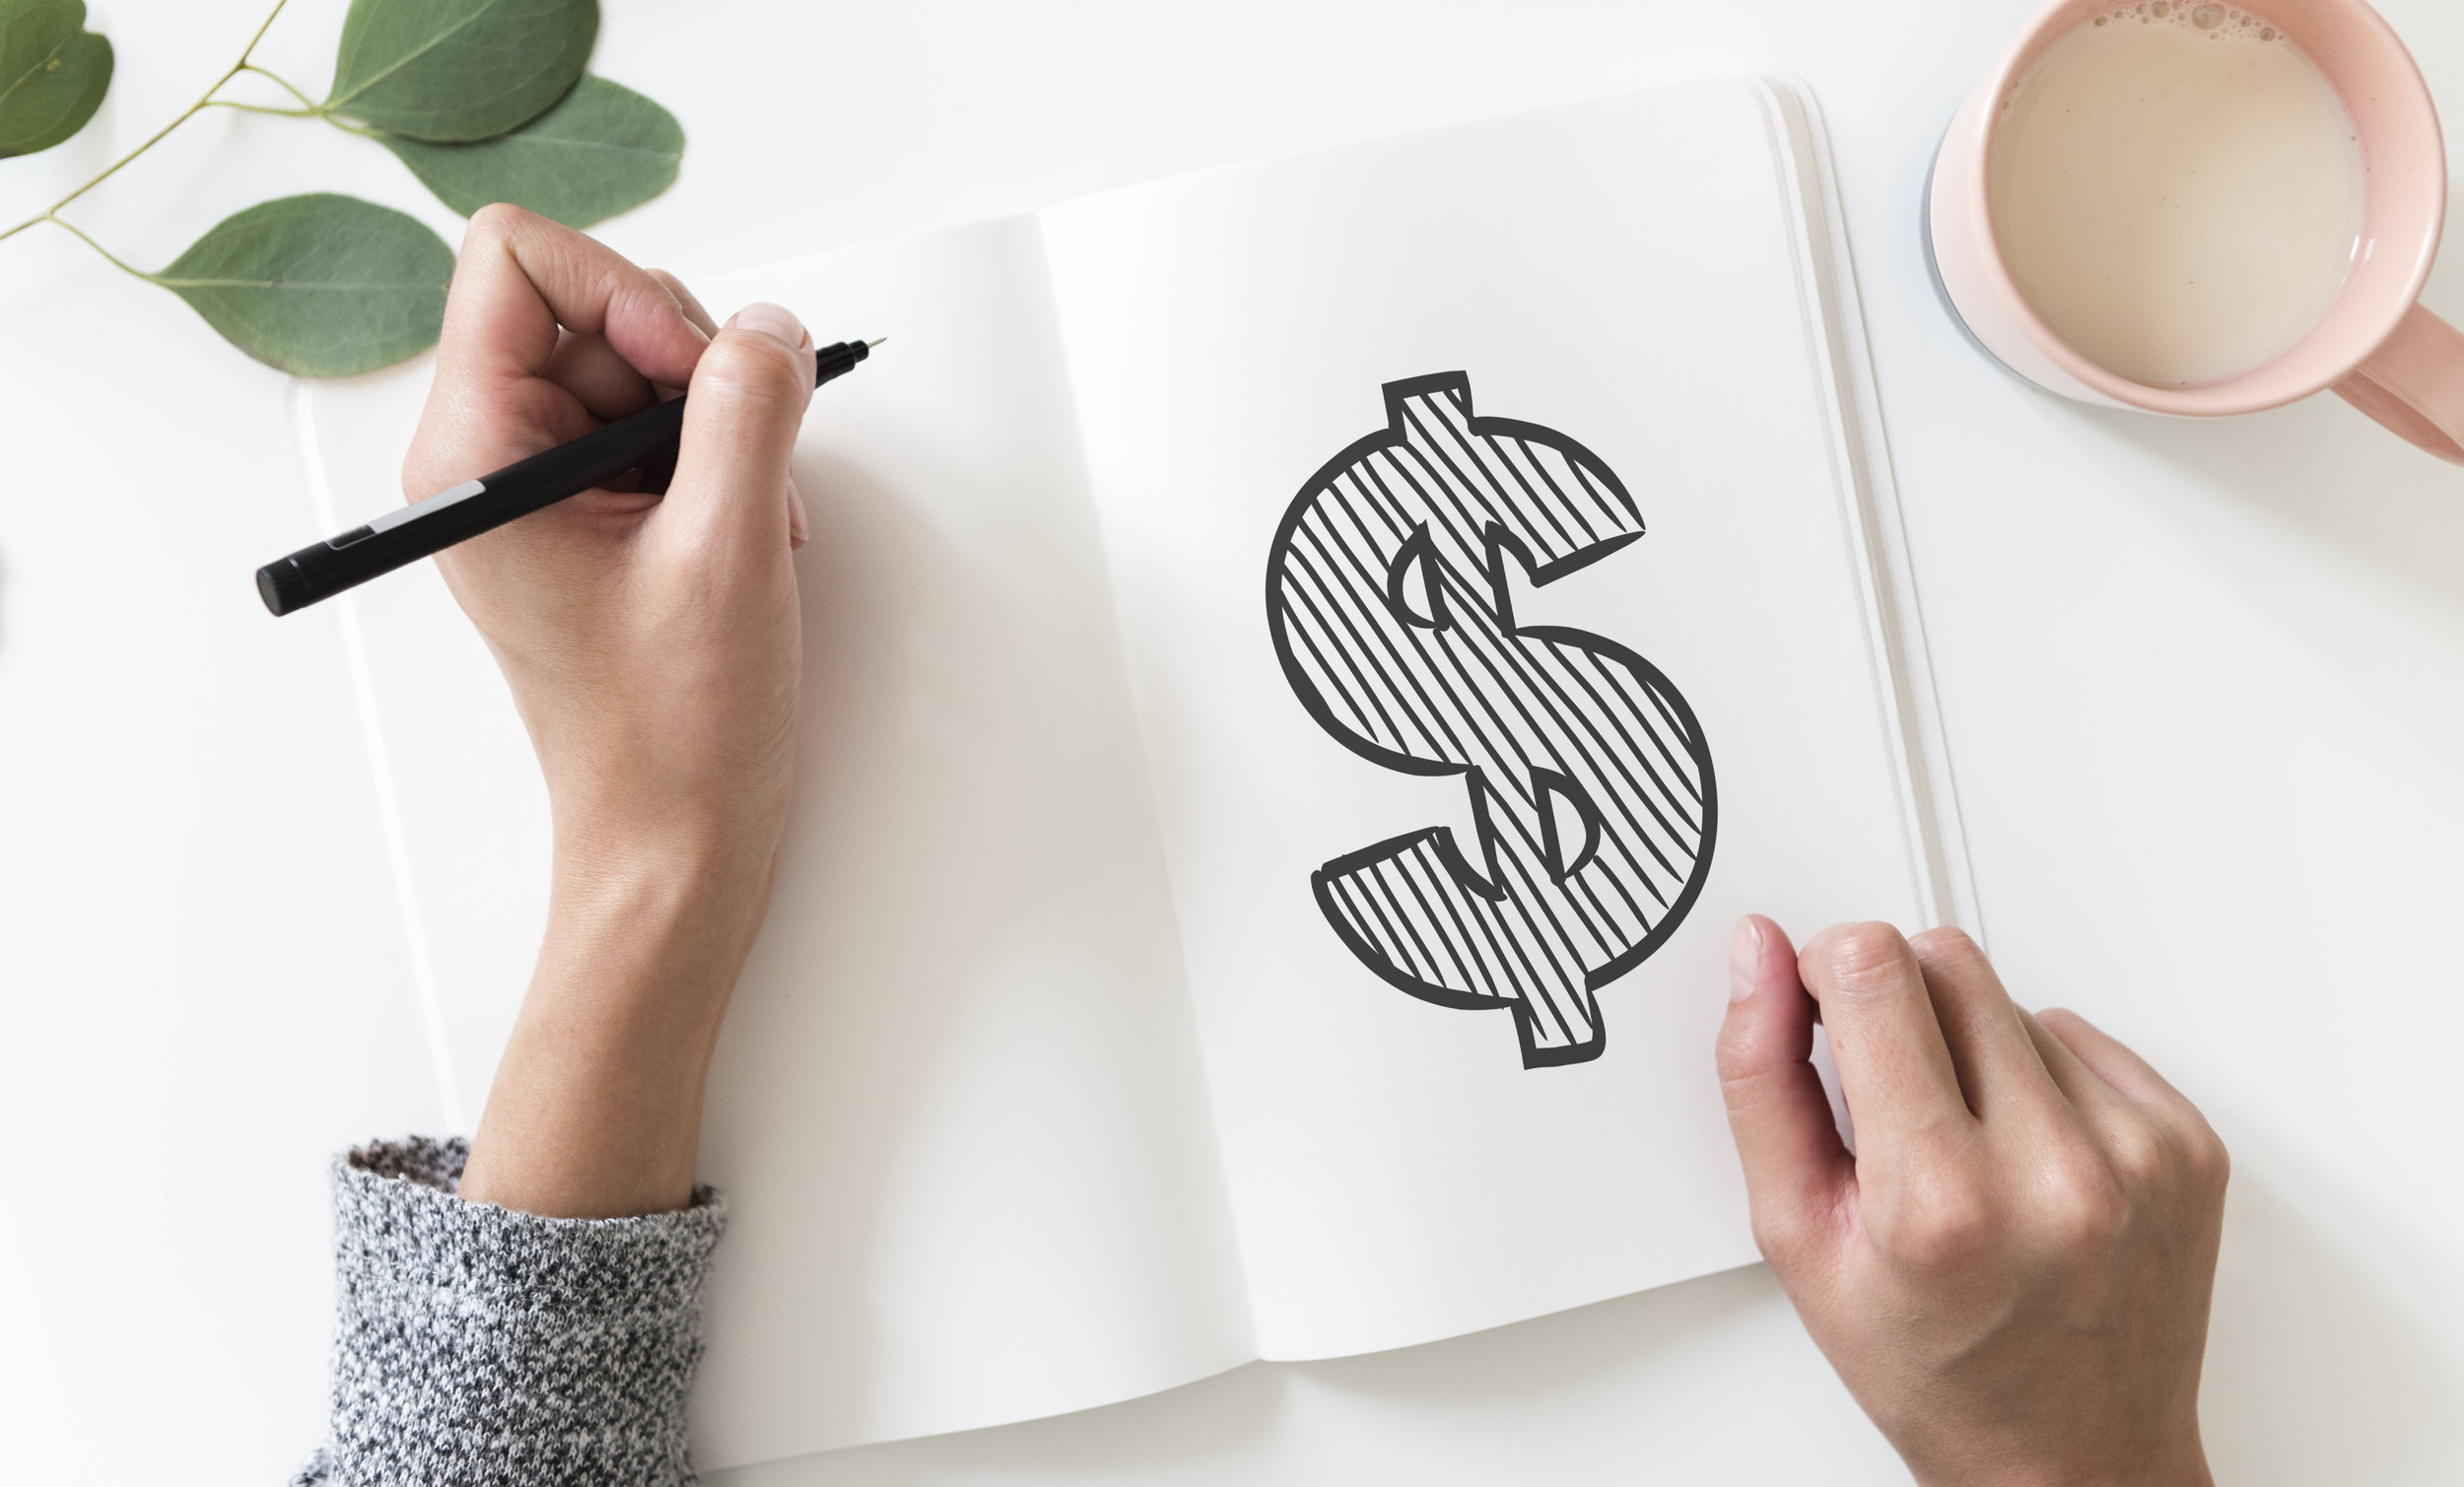 What is your hourly rate? - Do you know what you are actually making?When evaluating job offers, keeping a cool head and carefully weighing the pros and cons are crucial.